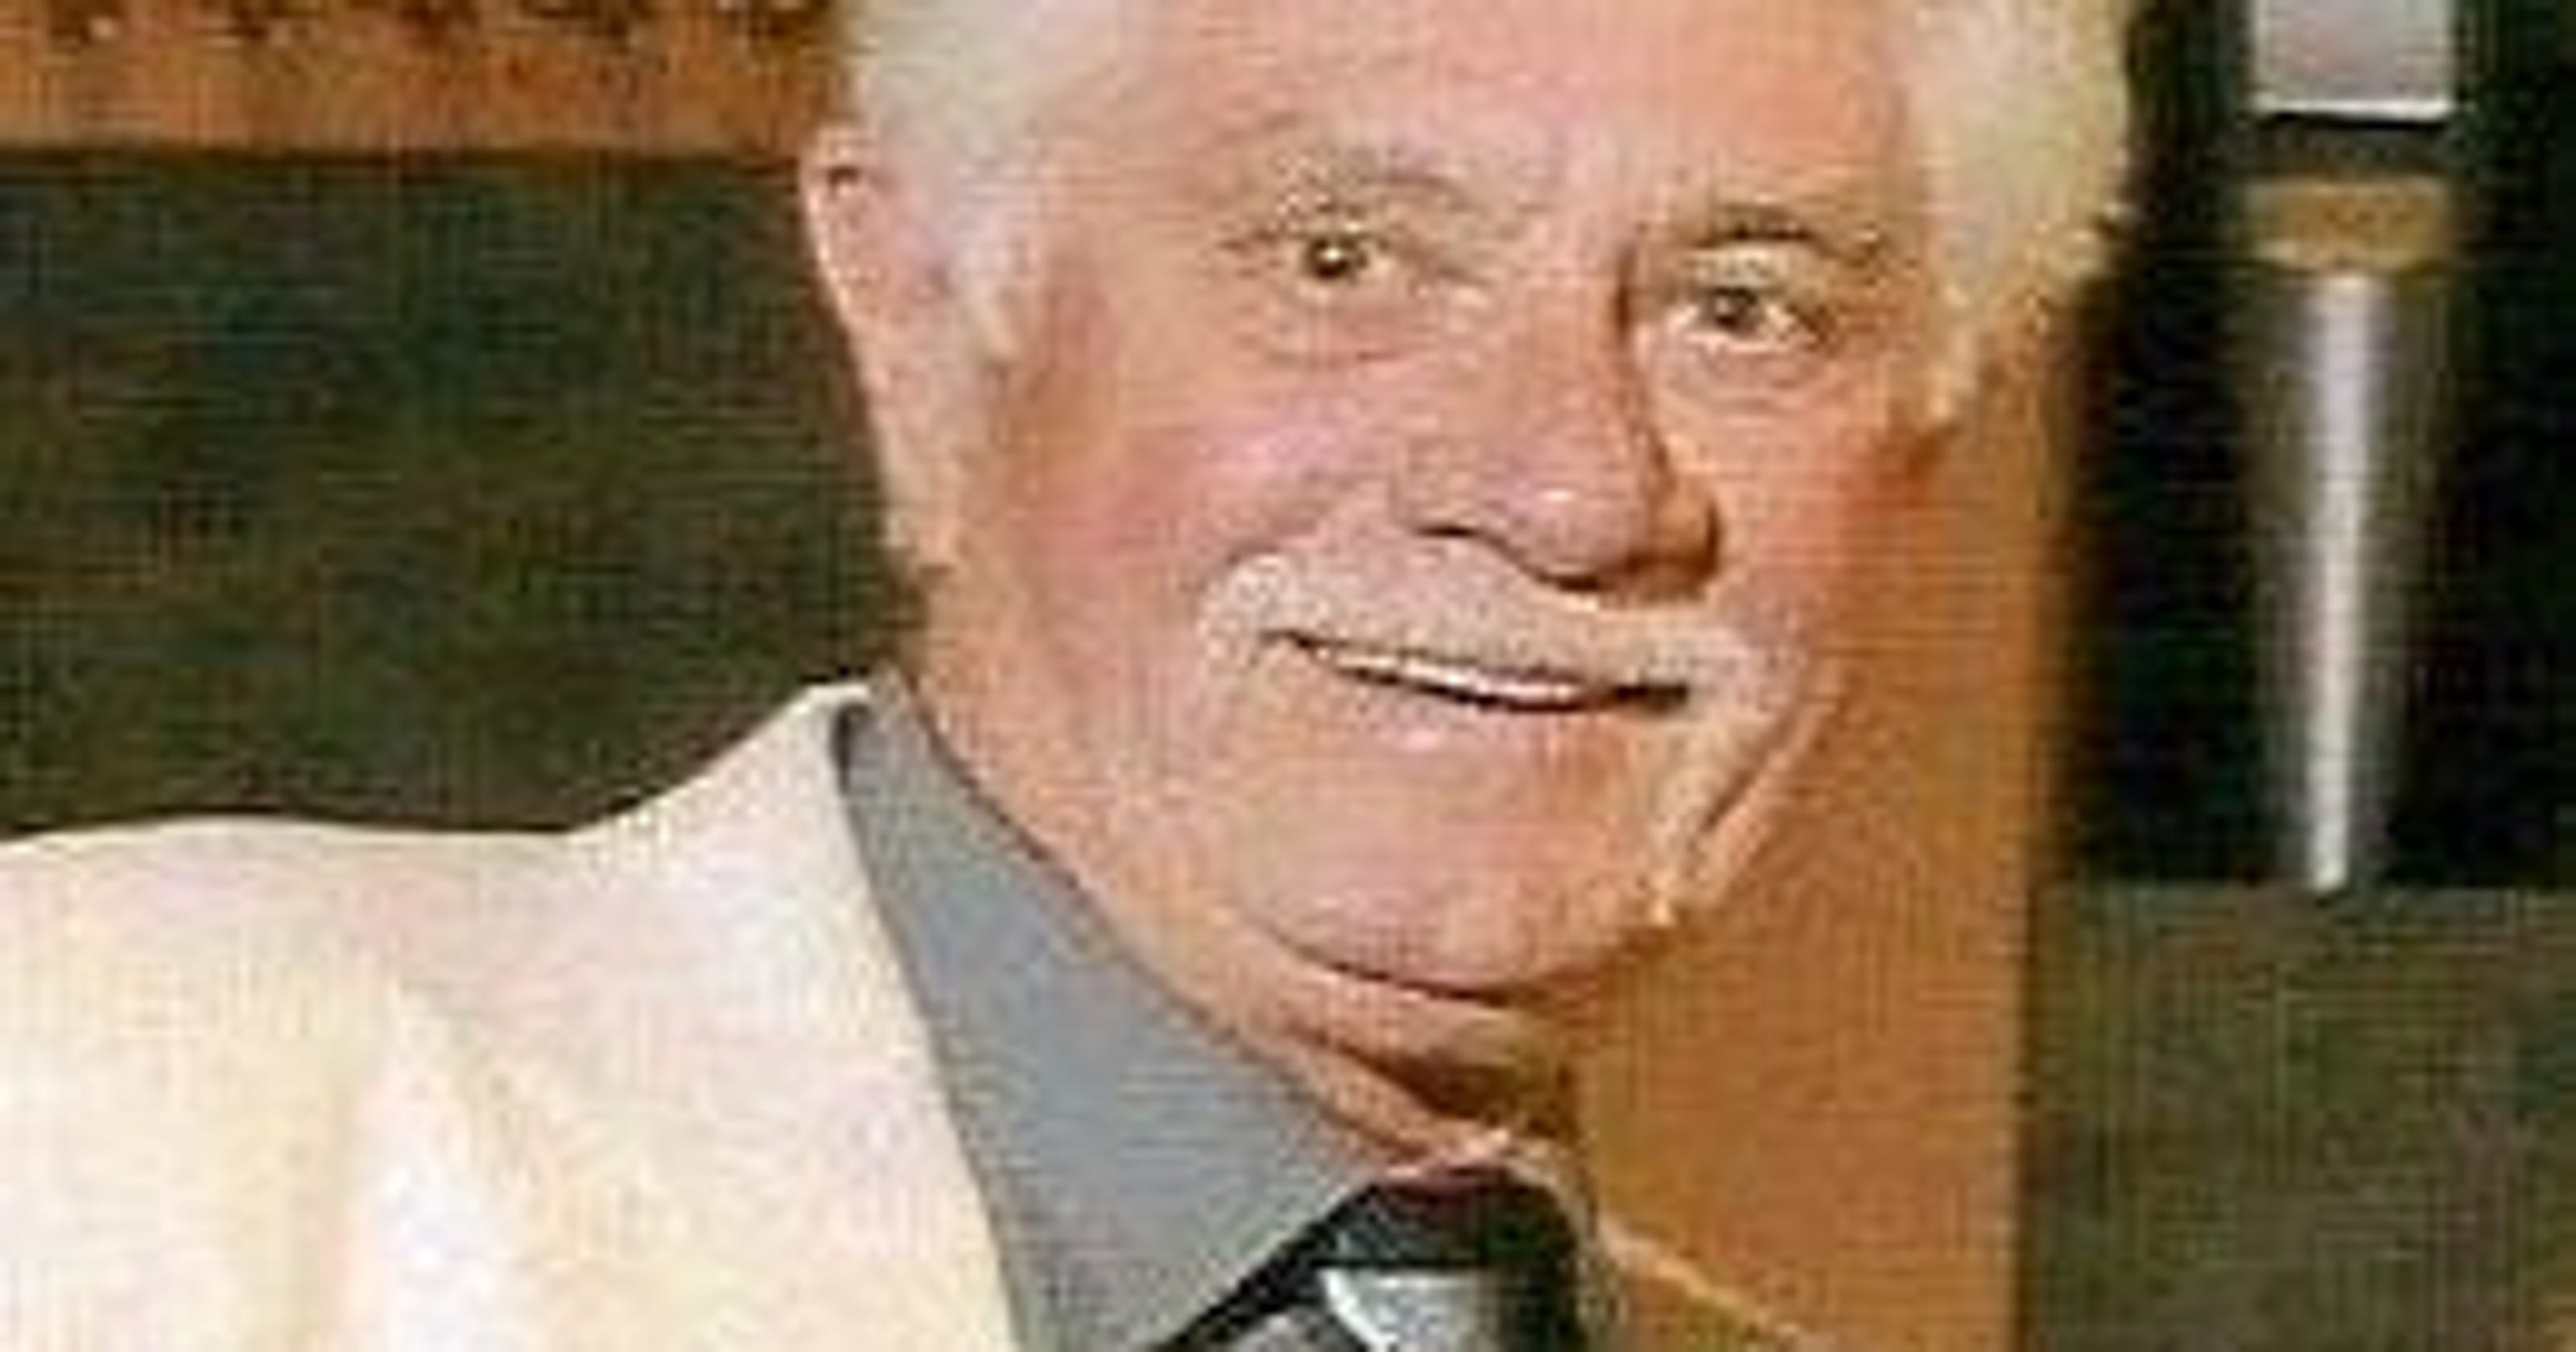 Alan Dale Foster, 74